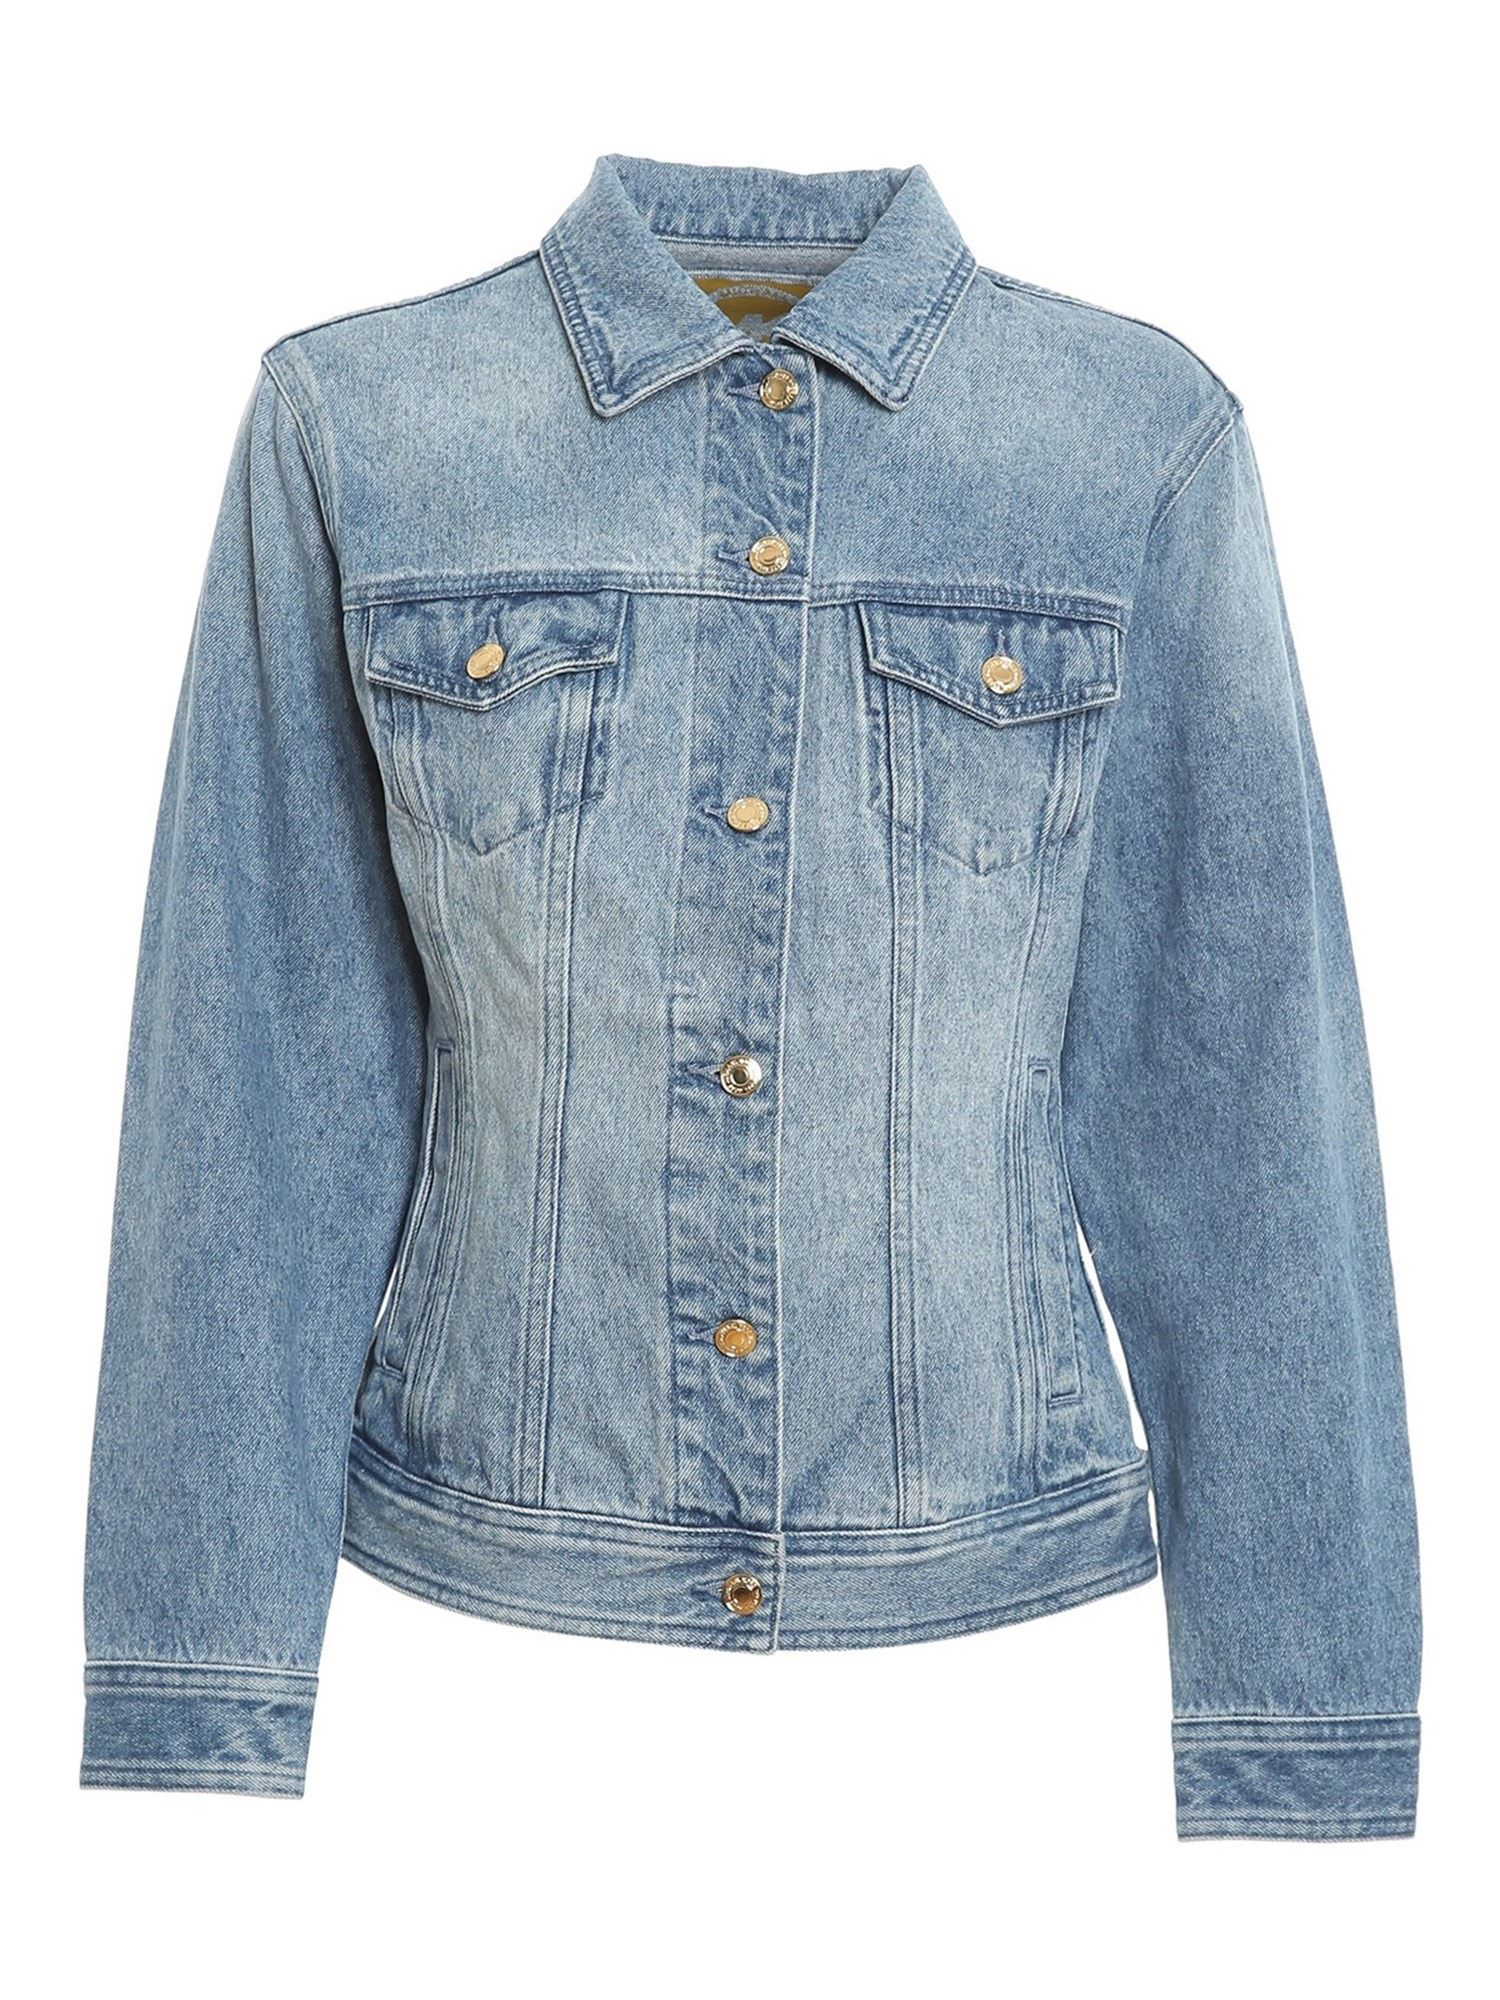 Michael Kors DENIM JACKET IN LIGHT BLUE